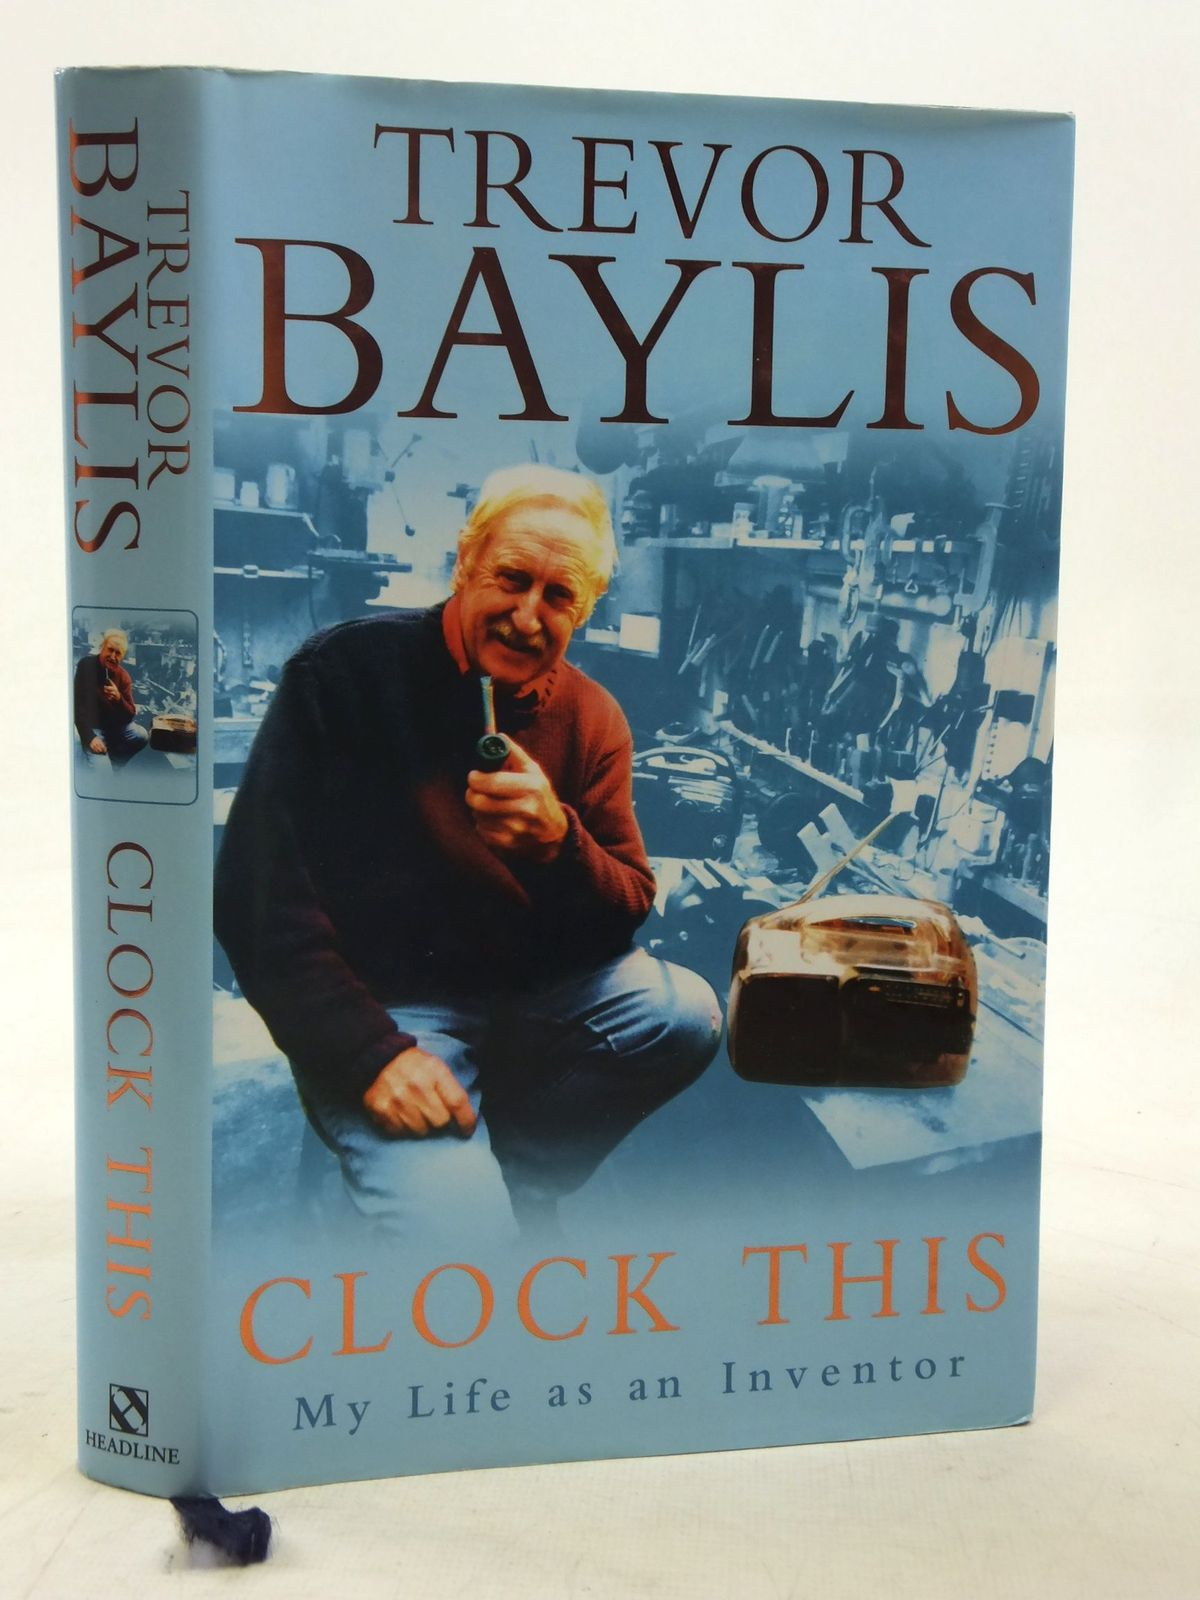 Photo of CLOCK THIS MY LIFE AS AN INVENTOR written by Baylis, Trevor published by Headline (STOCK CODE: 2116467)  for sale by Stella & Rose's Books